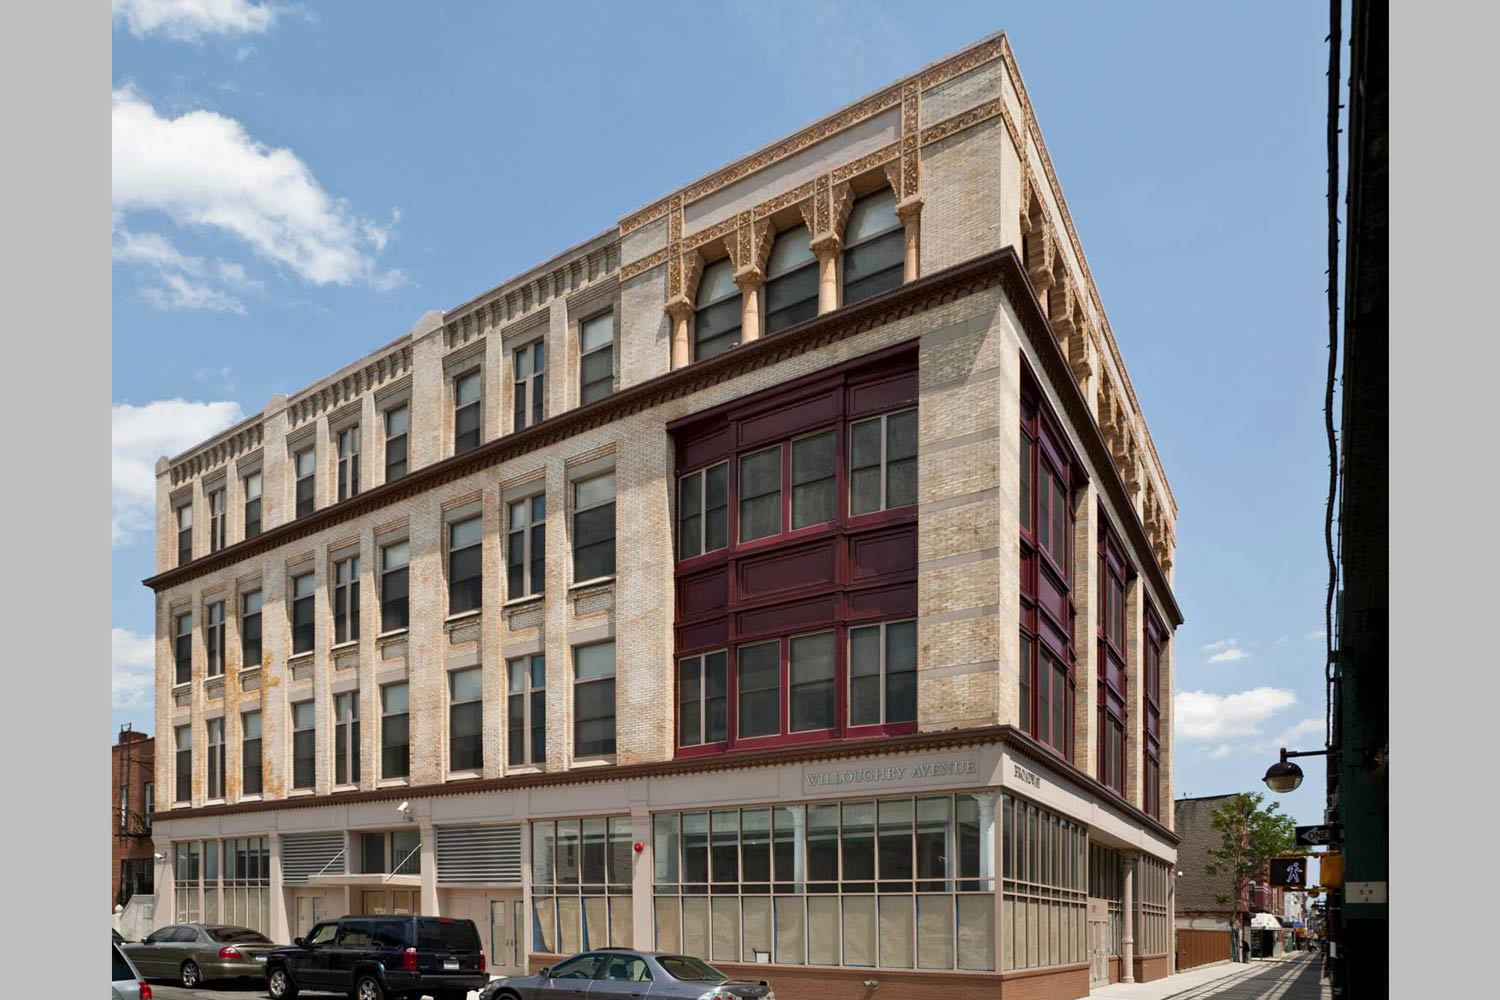 Anna Gonzalez are rental units for formerly homeless tenants, and affordable housing for low-income individuals.